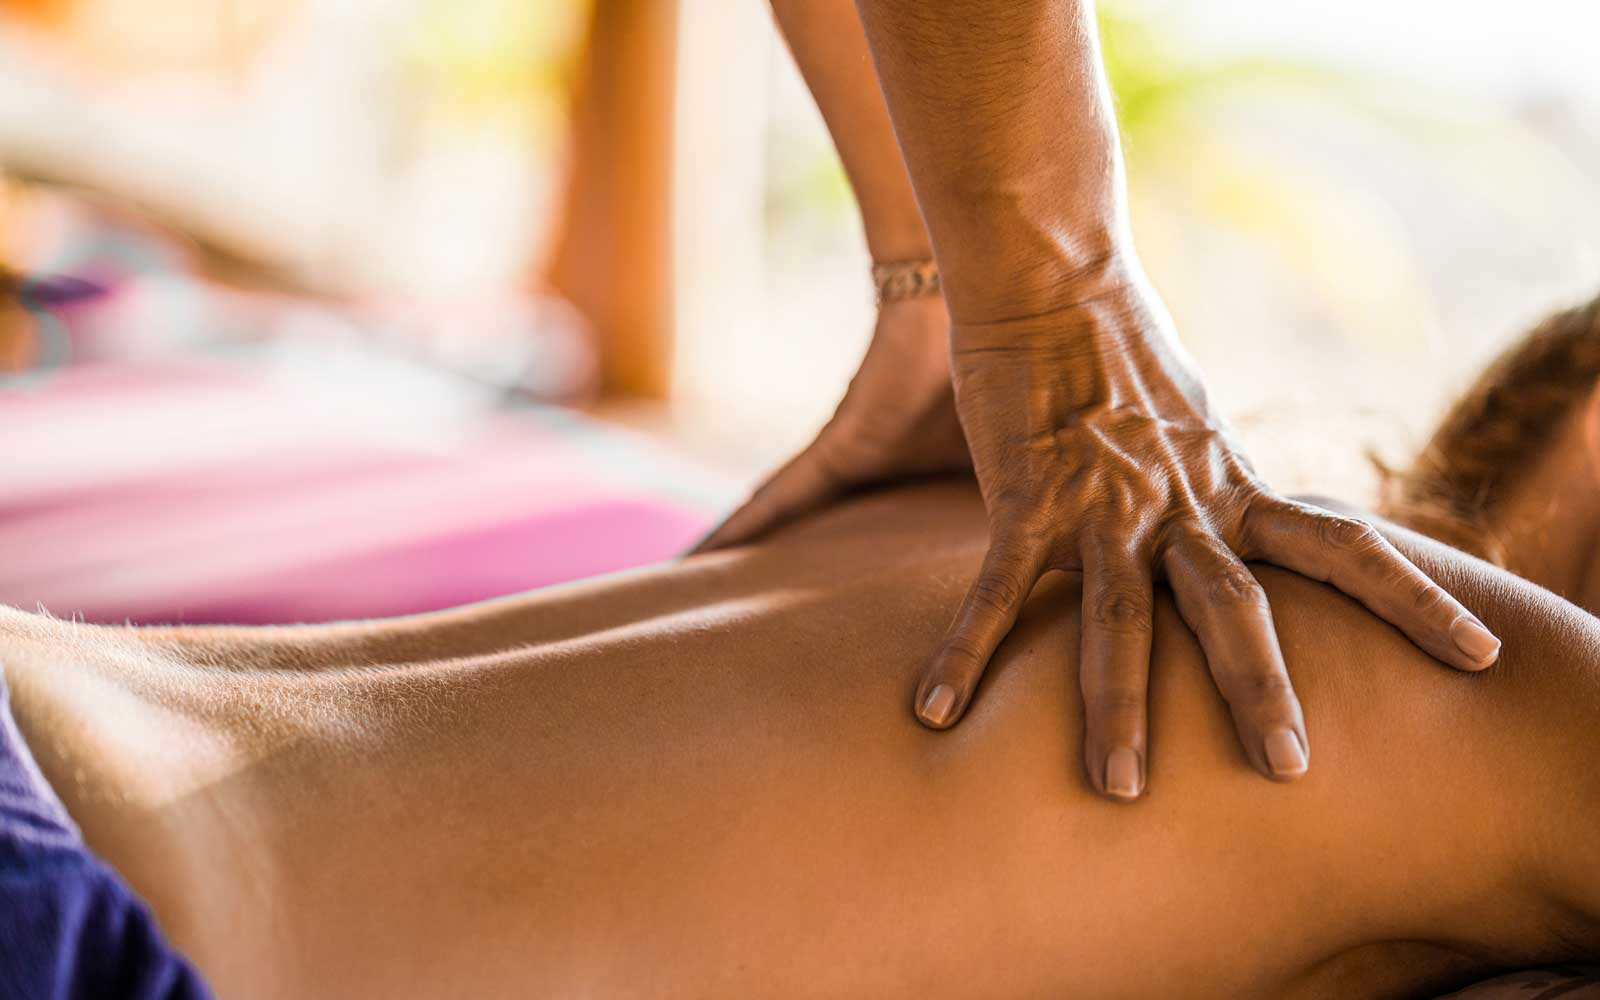 This Spa in Thailand Helps Women Released From Prison Get a Second Chance in Life